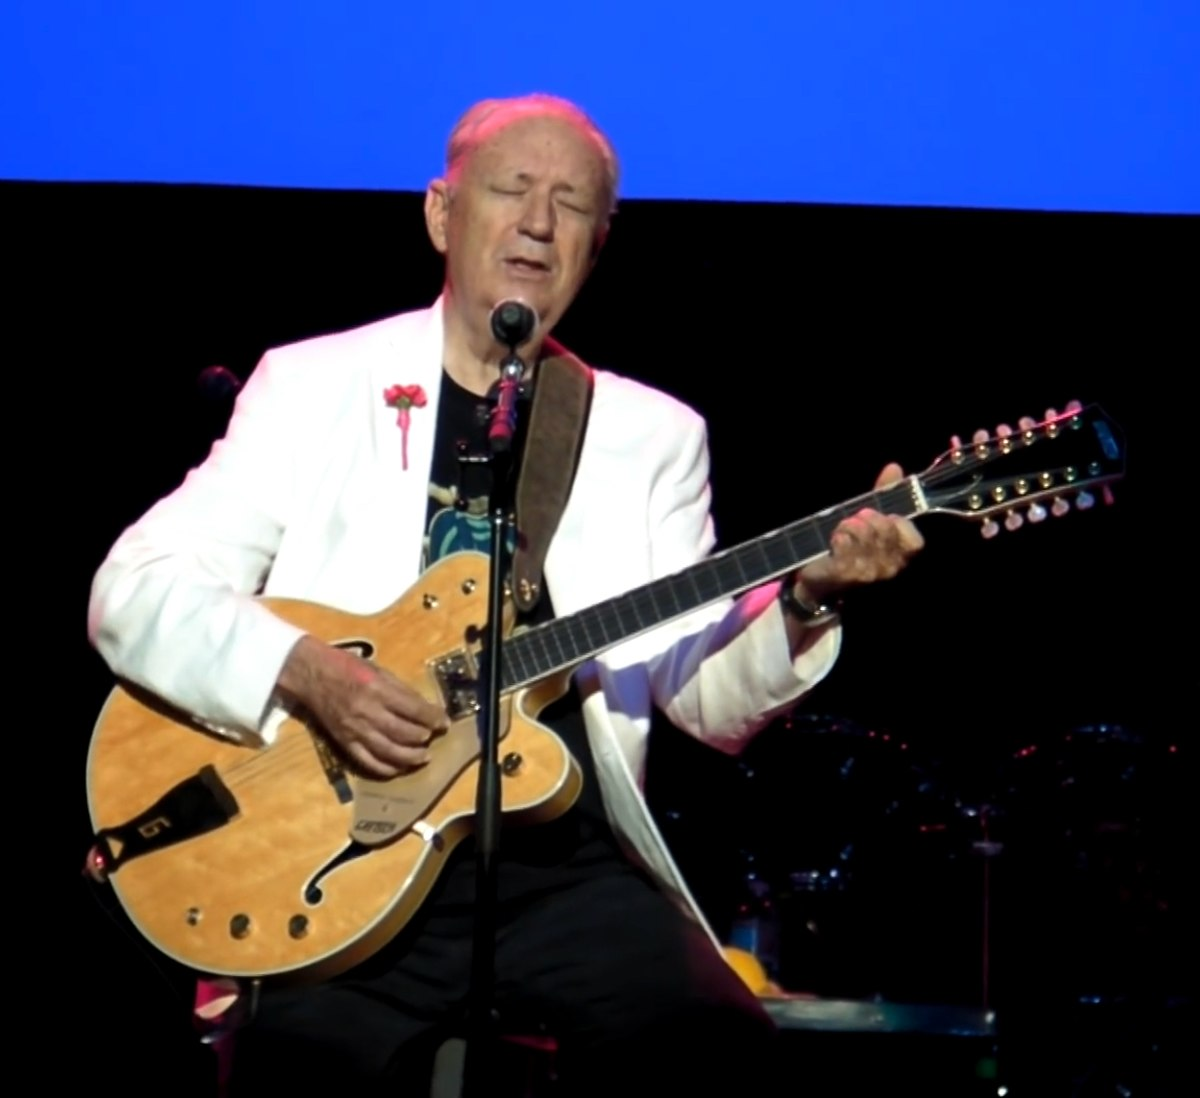 Michael Nesmith - Wikipedia